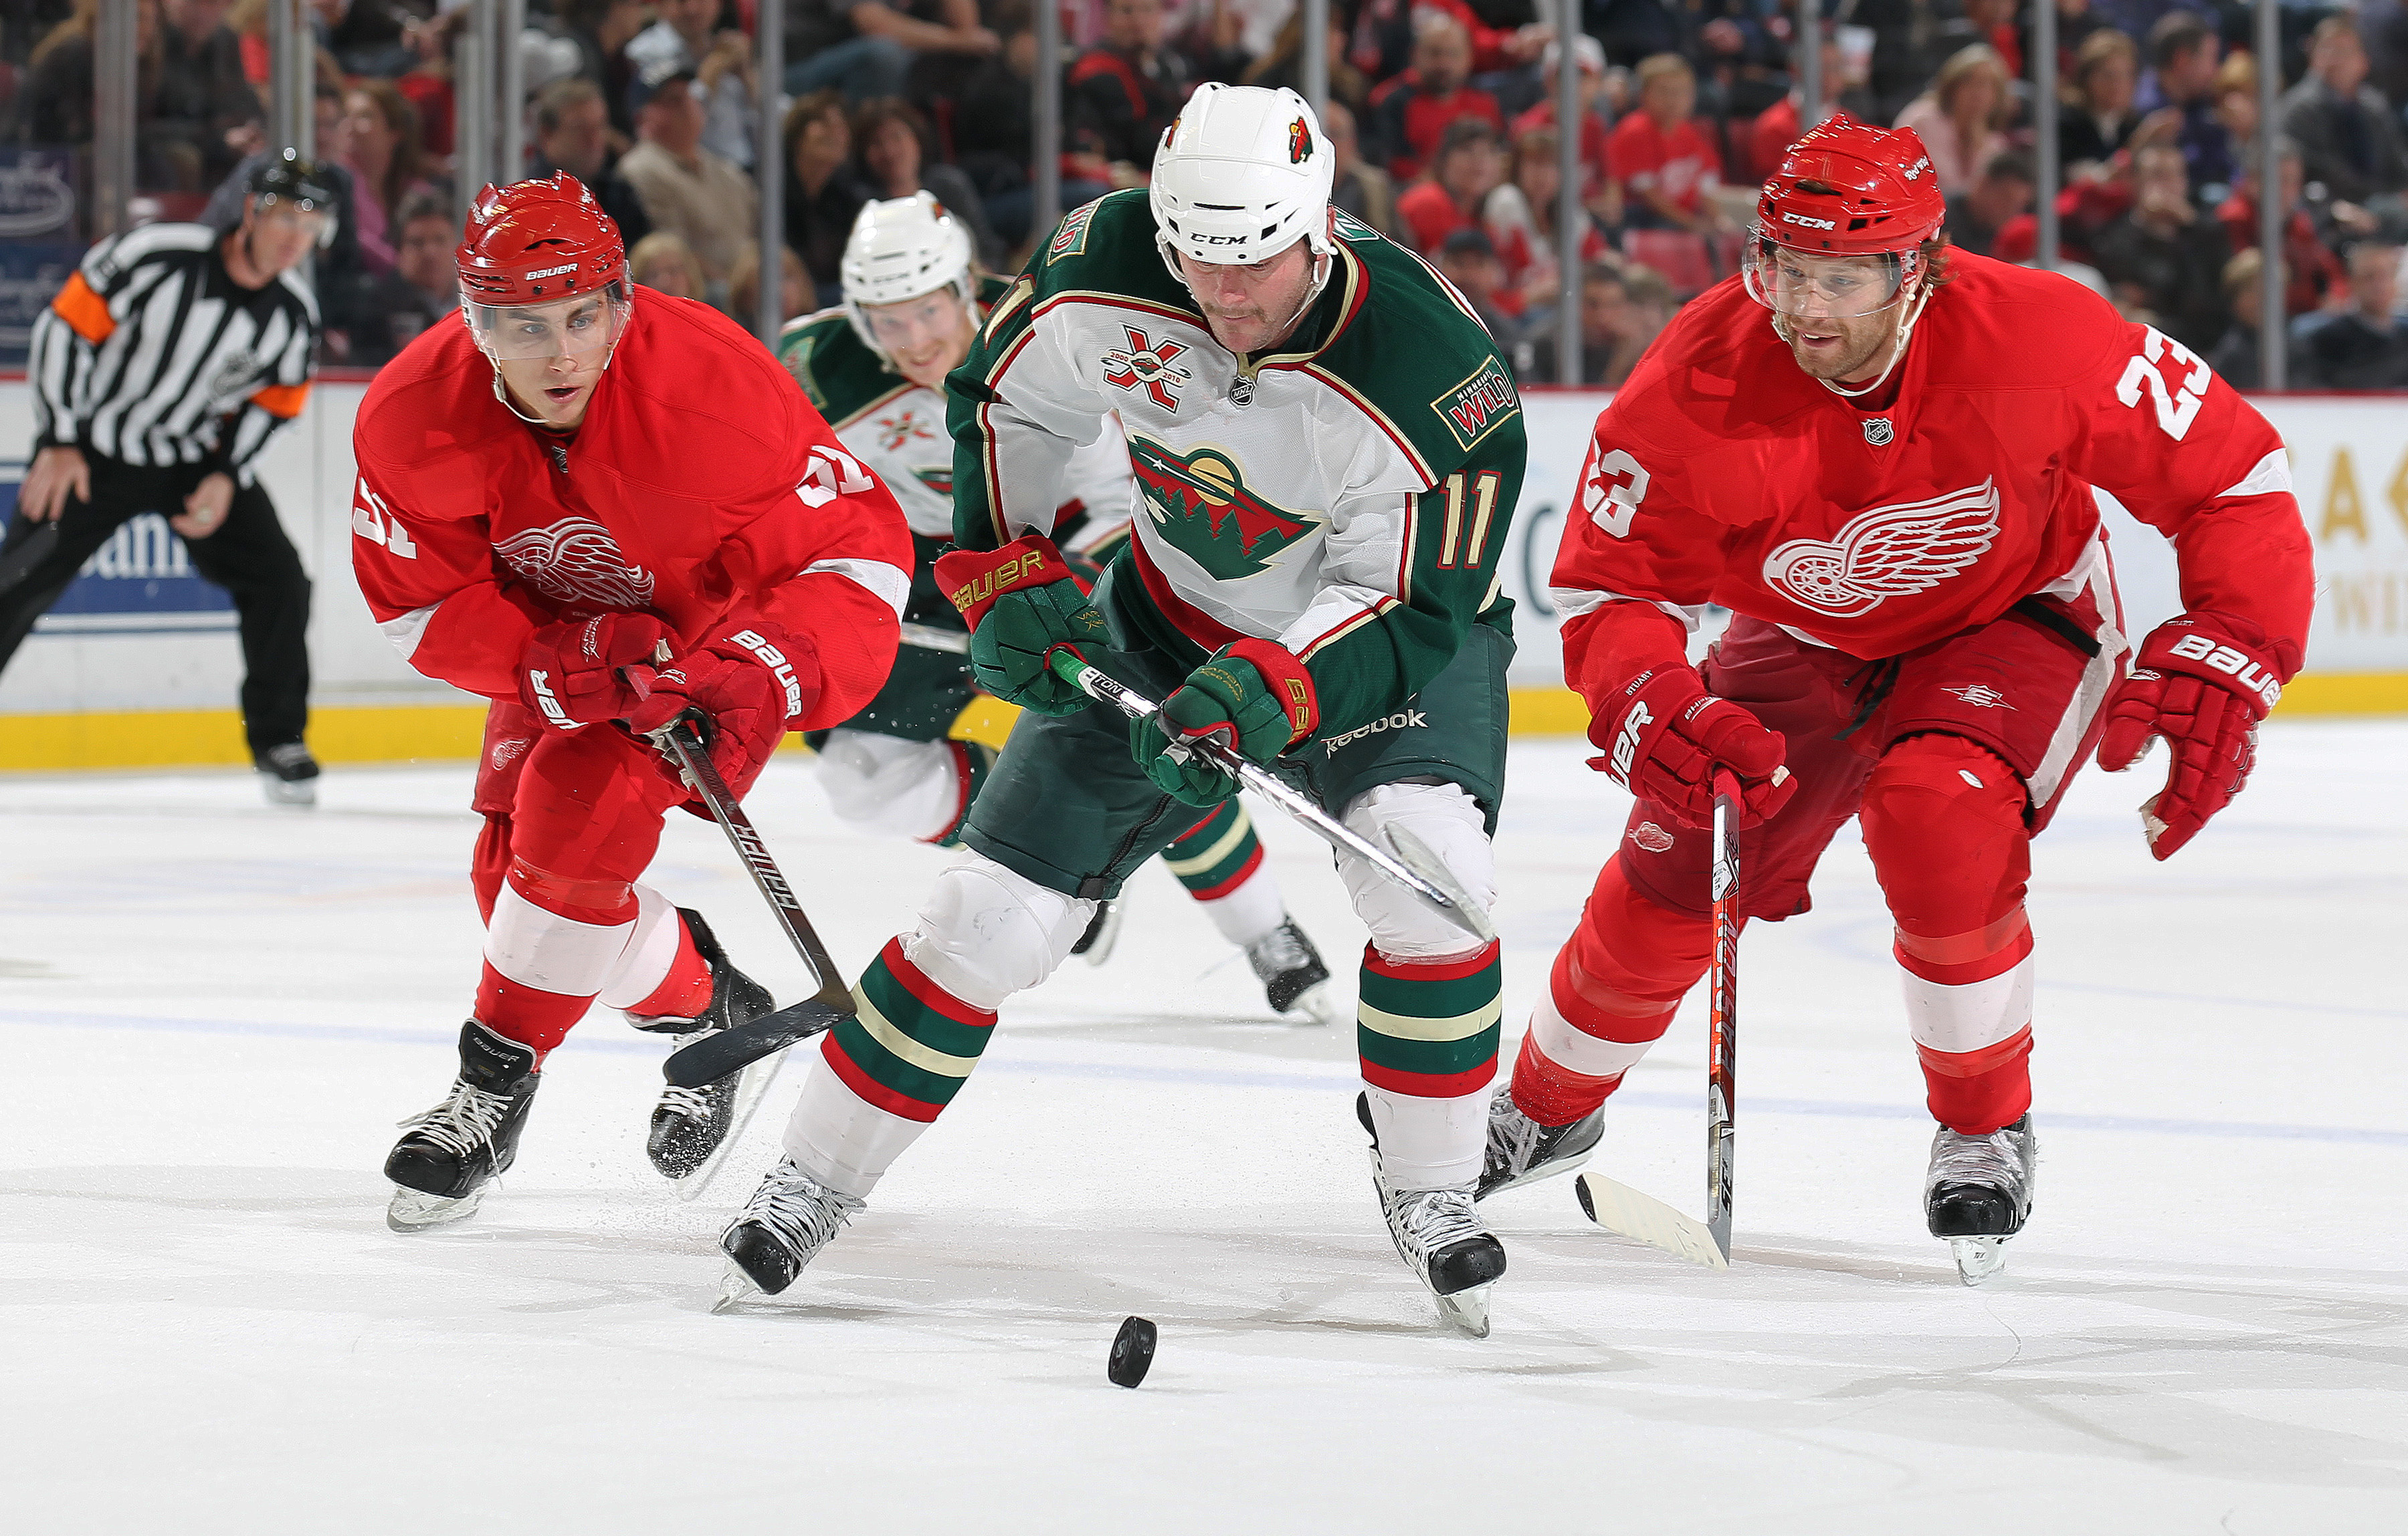 DETROIT, MI - NOVEMBER 19:  John Madden #11 of the Minnesota Wild skates in on a break while being checked by Valtteri Filppula #51 and Brad Stuart #23 of the Detroit Red Wings in a game on November 19, 2010 at the Joe Louis Arena in Detroit, Michigan. Th